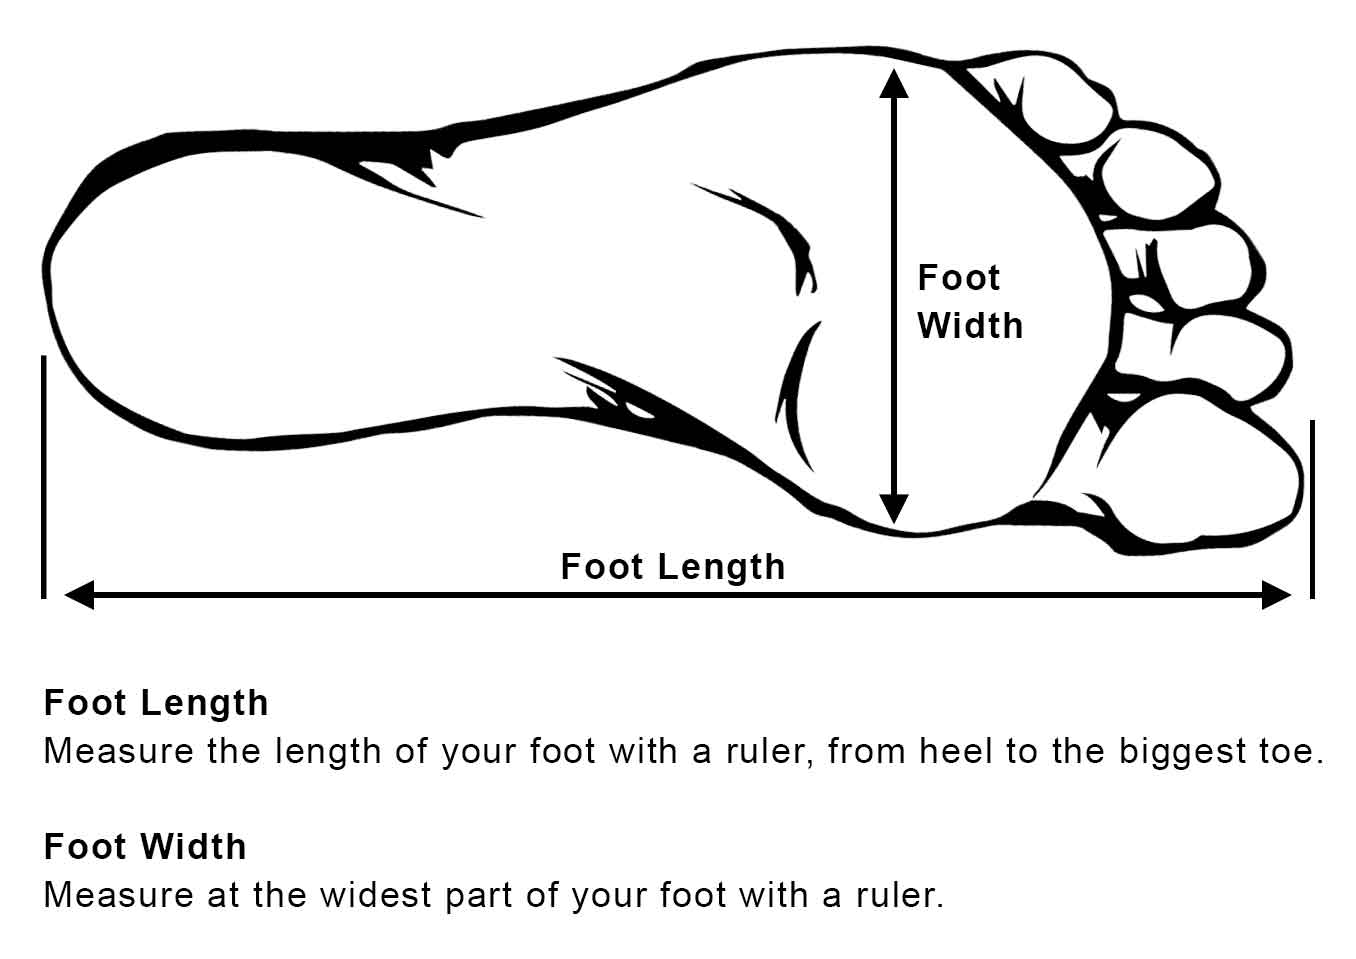 Measure Your Foot Length and Width